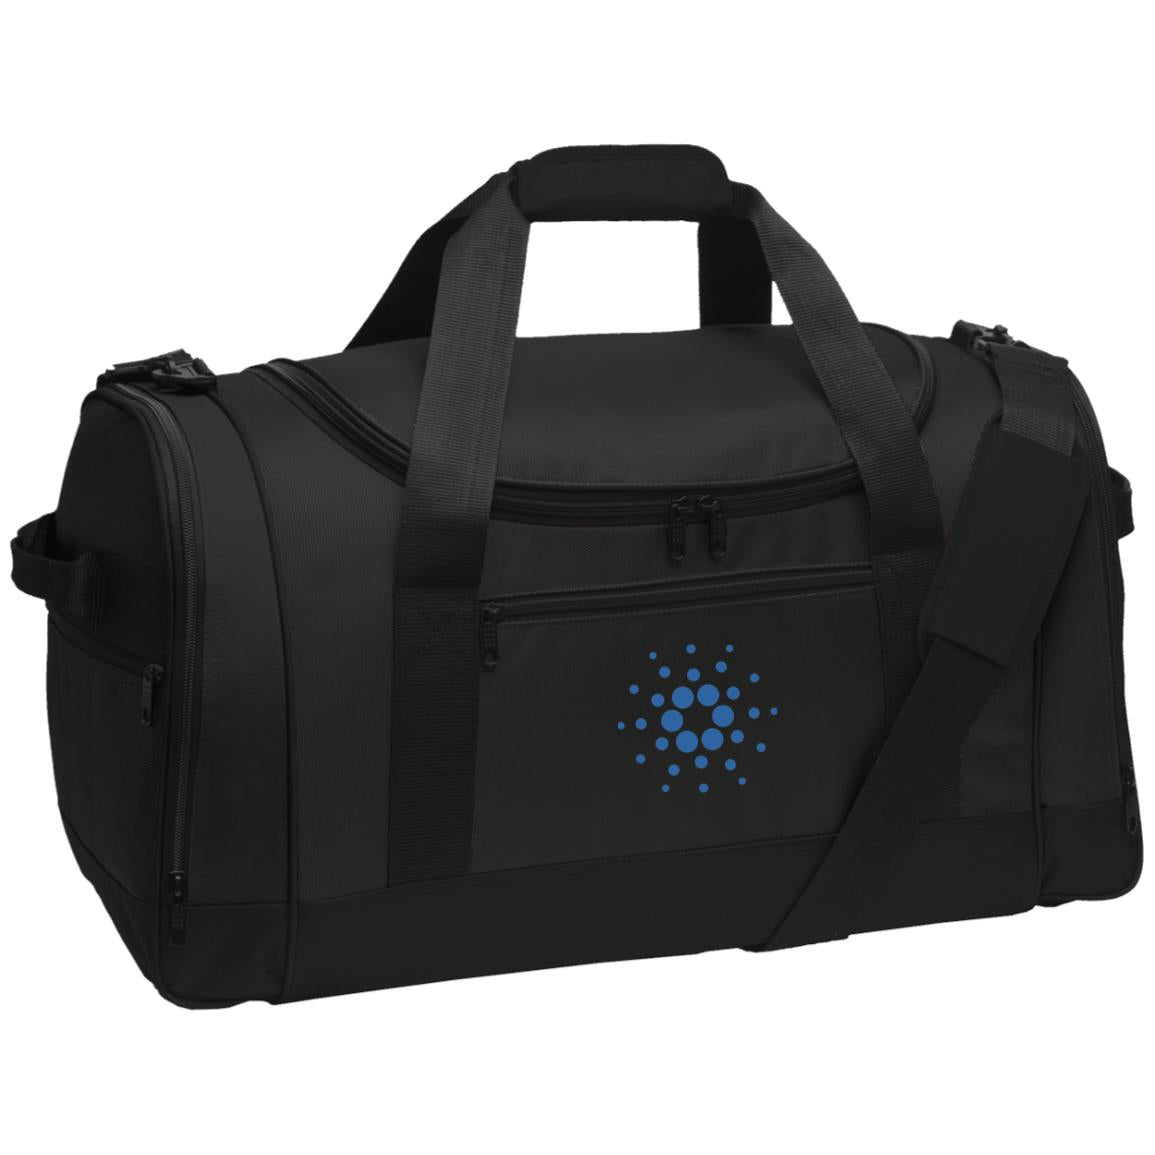 Cardano Travel Sports Duffel